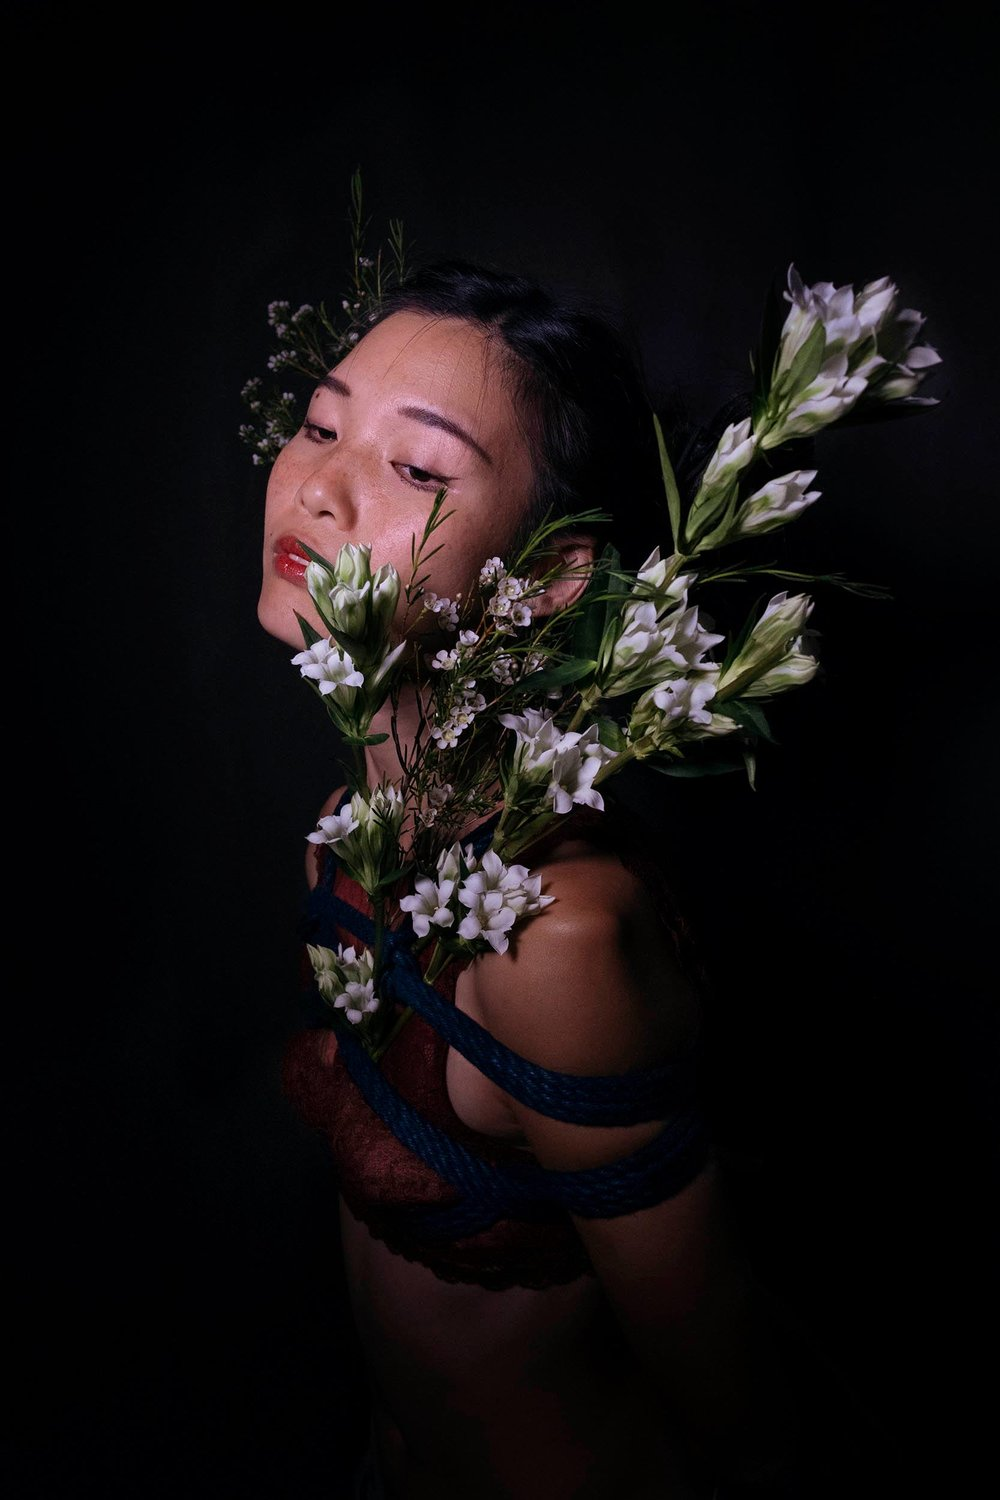 Wabisabi tied by Pauline Massimo, photography by Shatel Liao